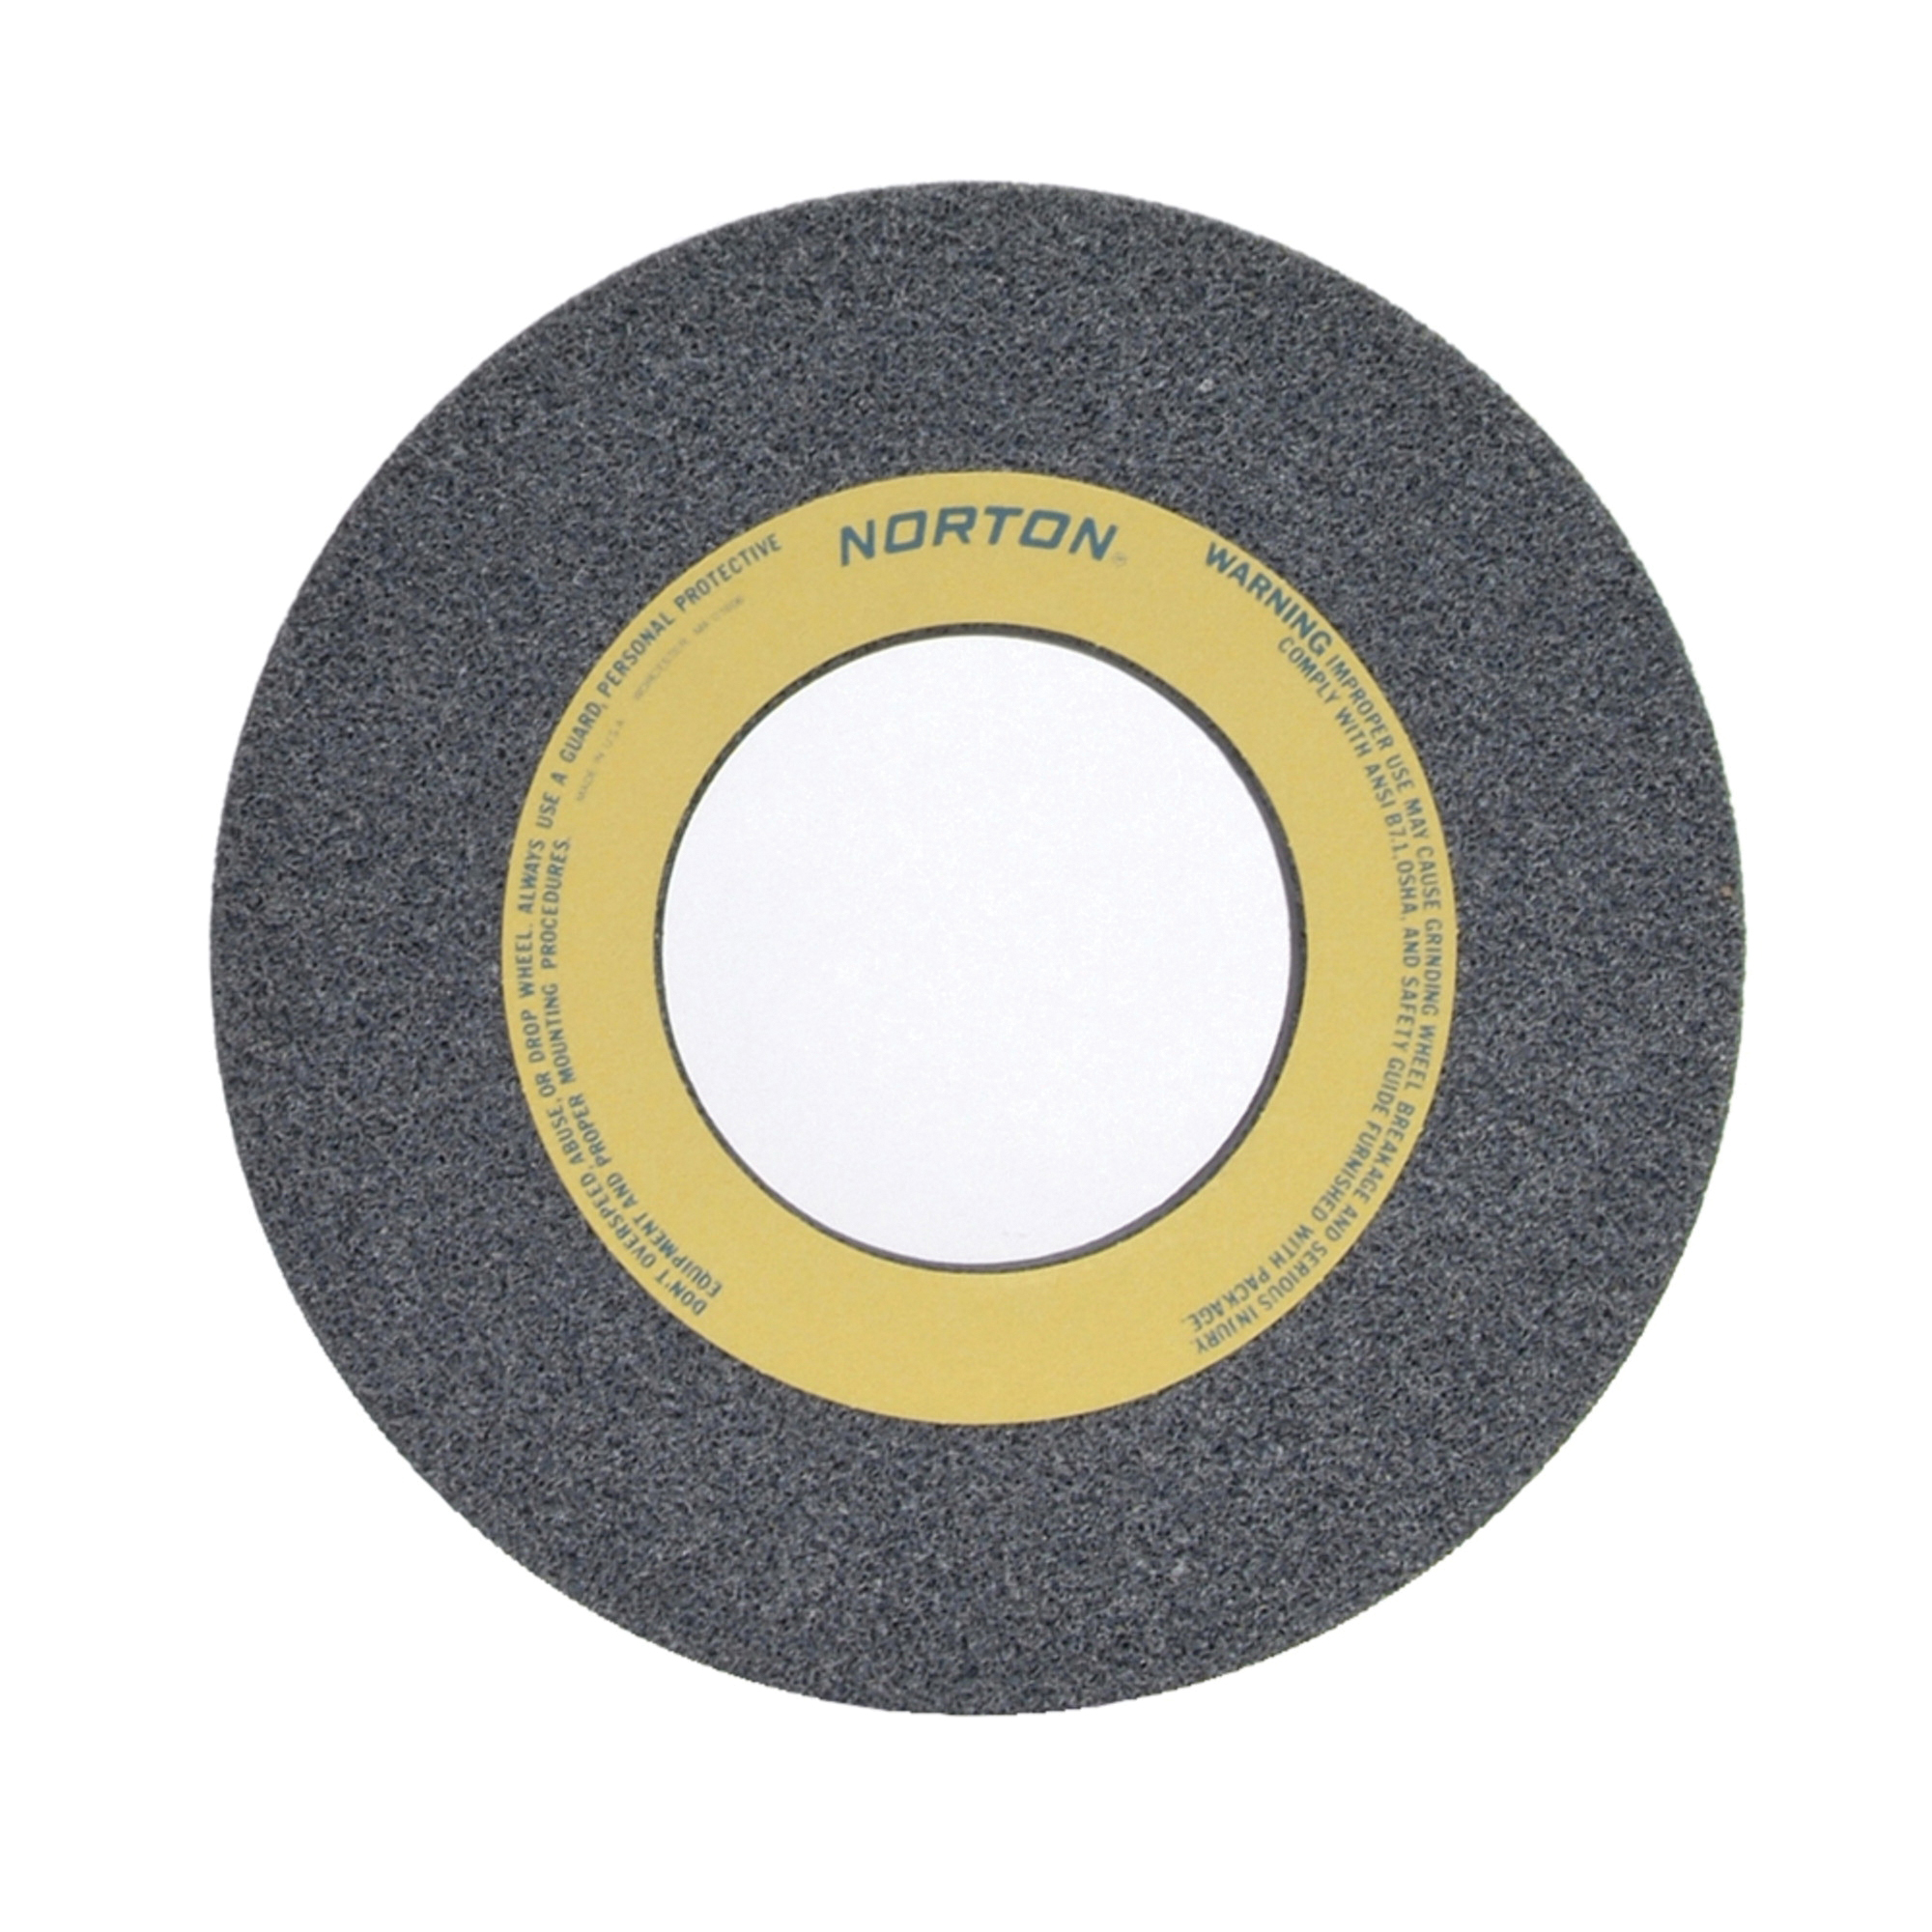 Norton® 66253263145 32A Straight Toolroom Wheel, 12 in Dia x 1-1/2 in THK, 5 in Center Hole, 46 Grit, Aluminum Oxide Abrasive